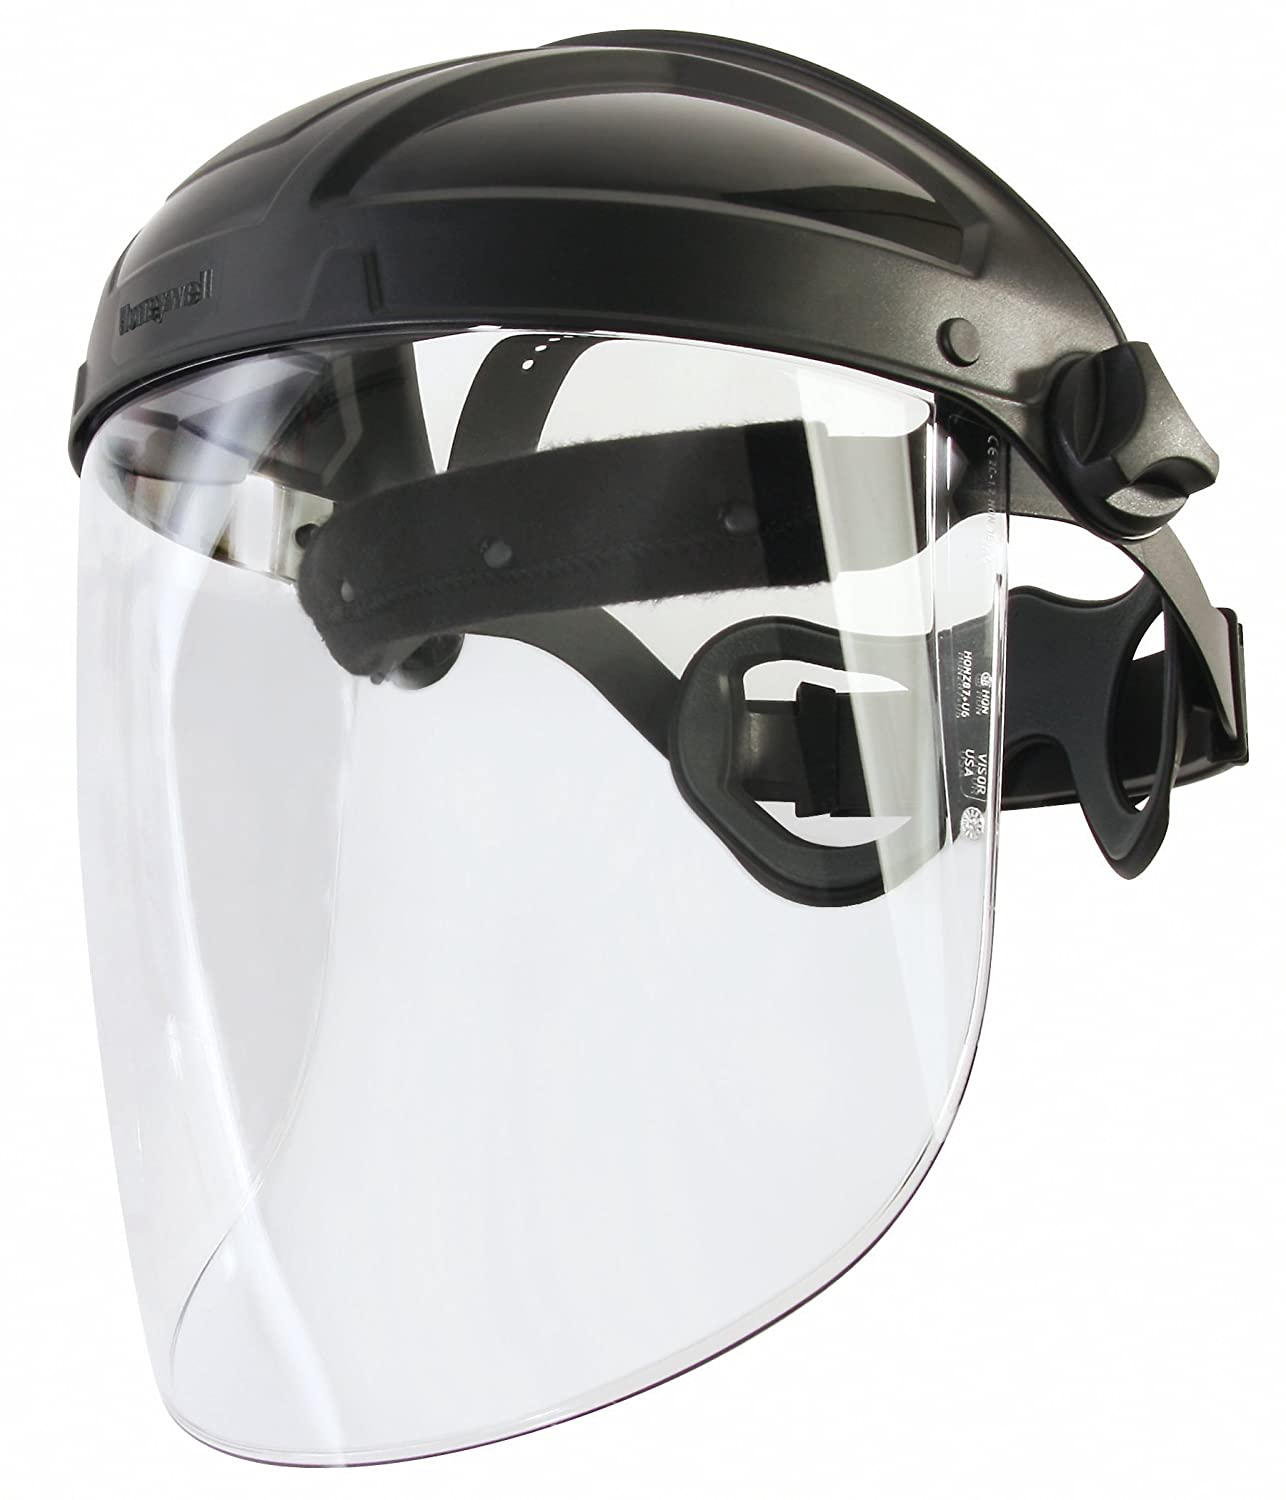 'Honeywell Turbosh Protective Face Shield |/Face with Flip Visor/Also Suitable for Glasses Wearers/Face Protection for a wide range of applications Honeywell Safety